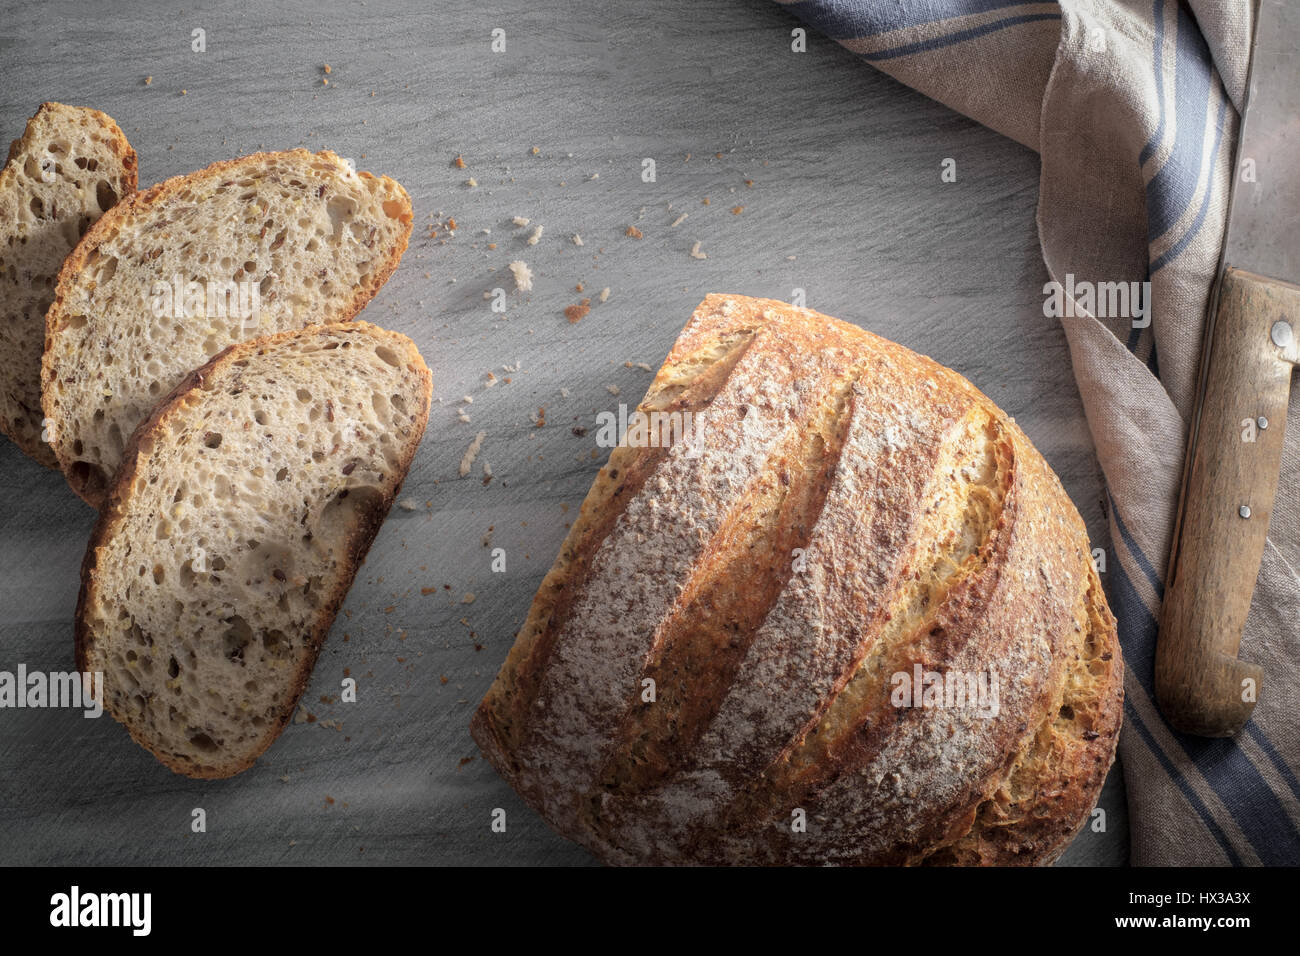 Sliced Artisan loaf of bread - from above - Stock Image